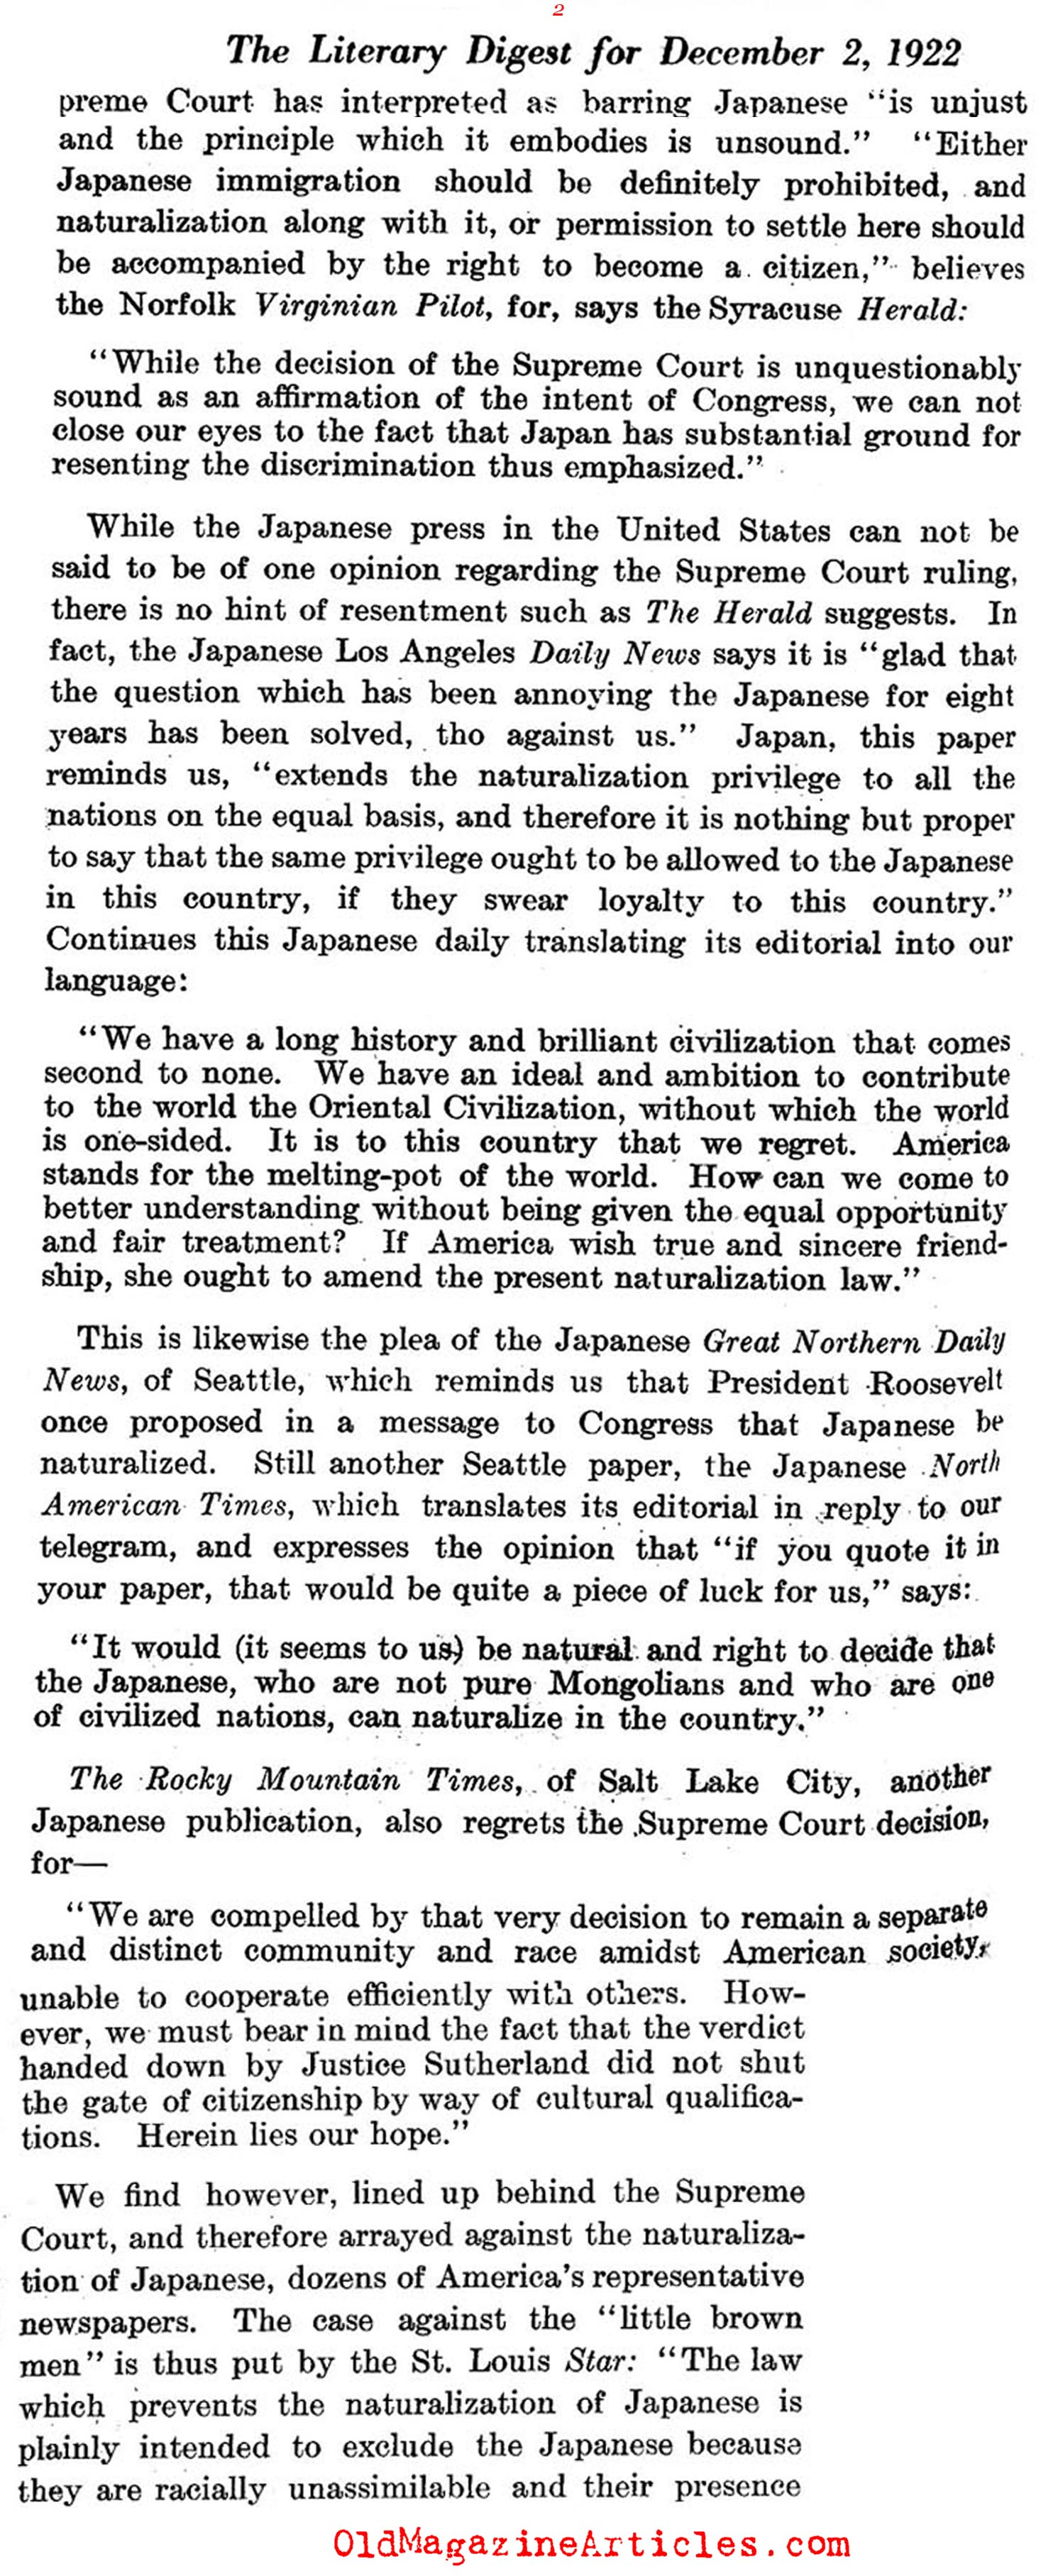 No Citizenship for Japanese Immigrants (Literary Digest, 1922)